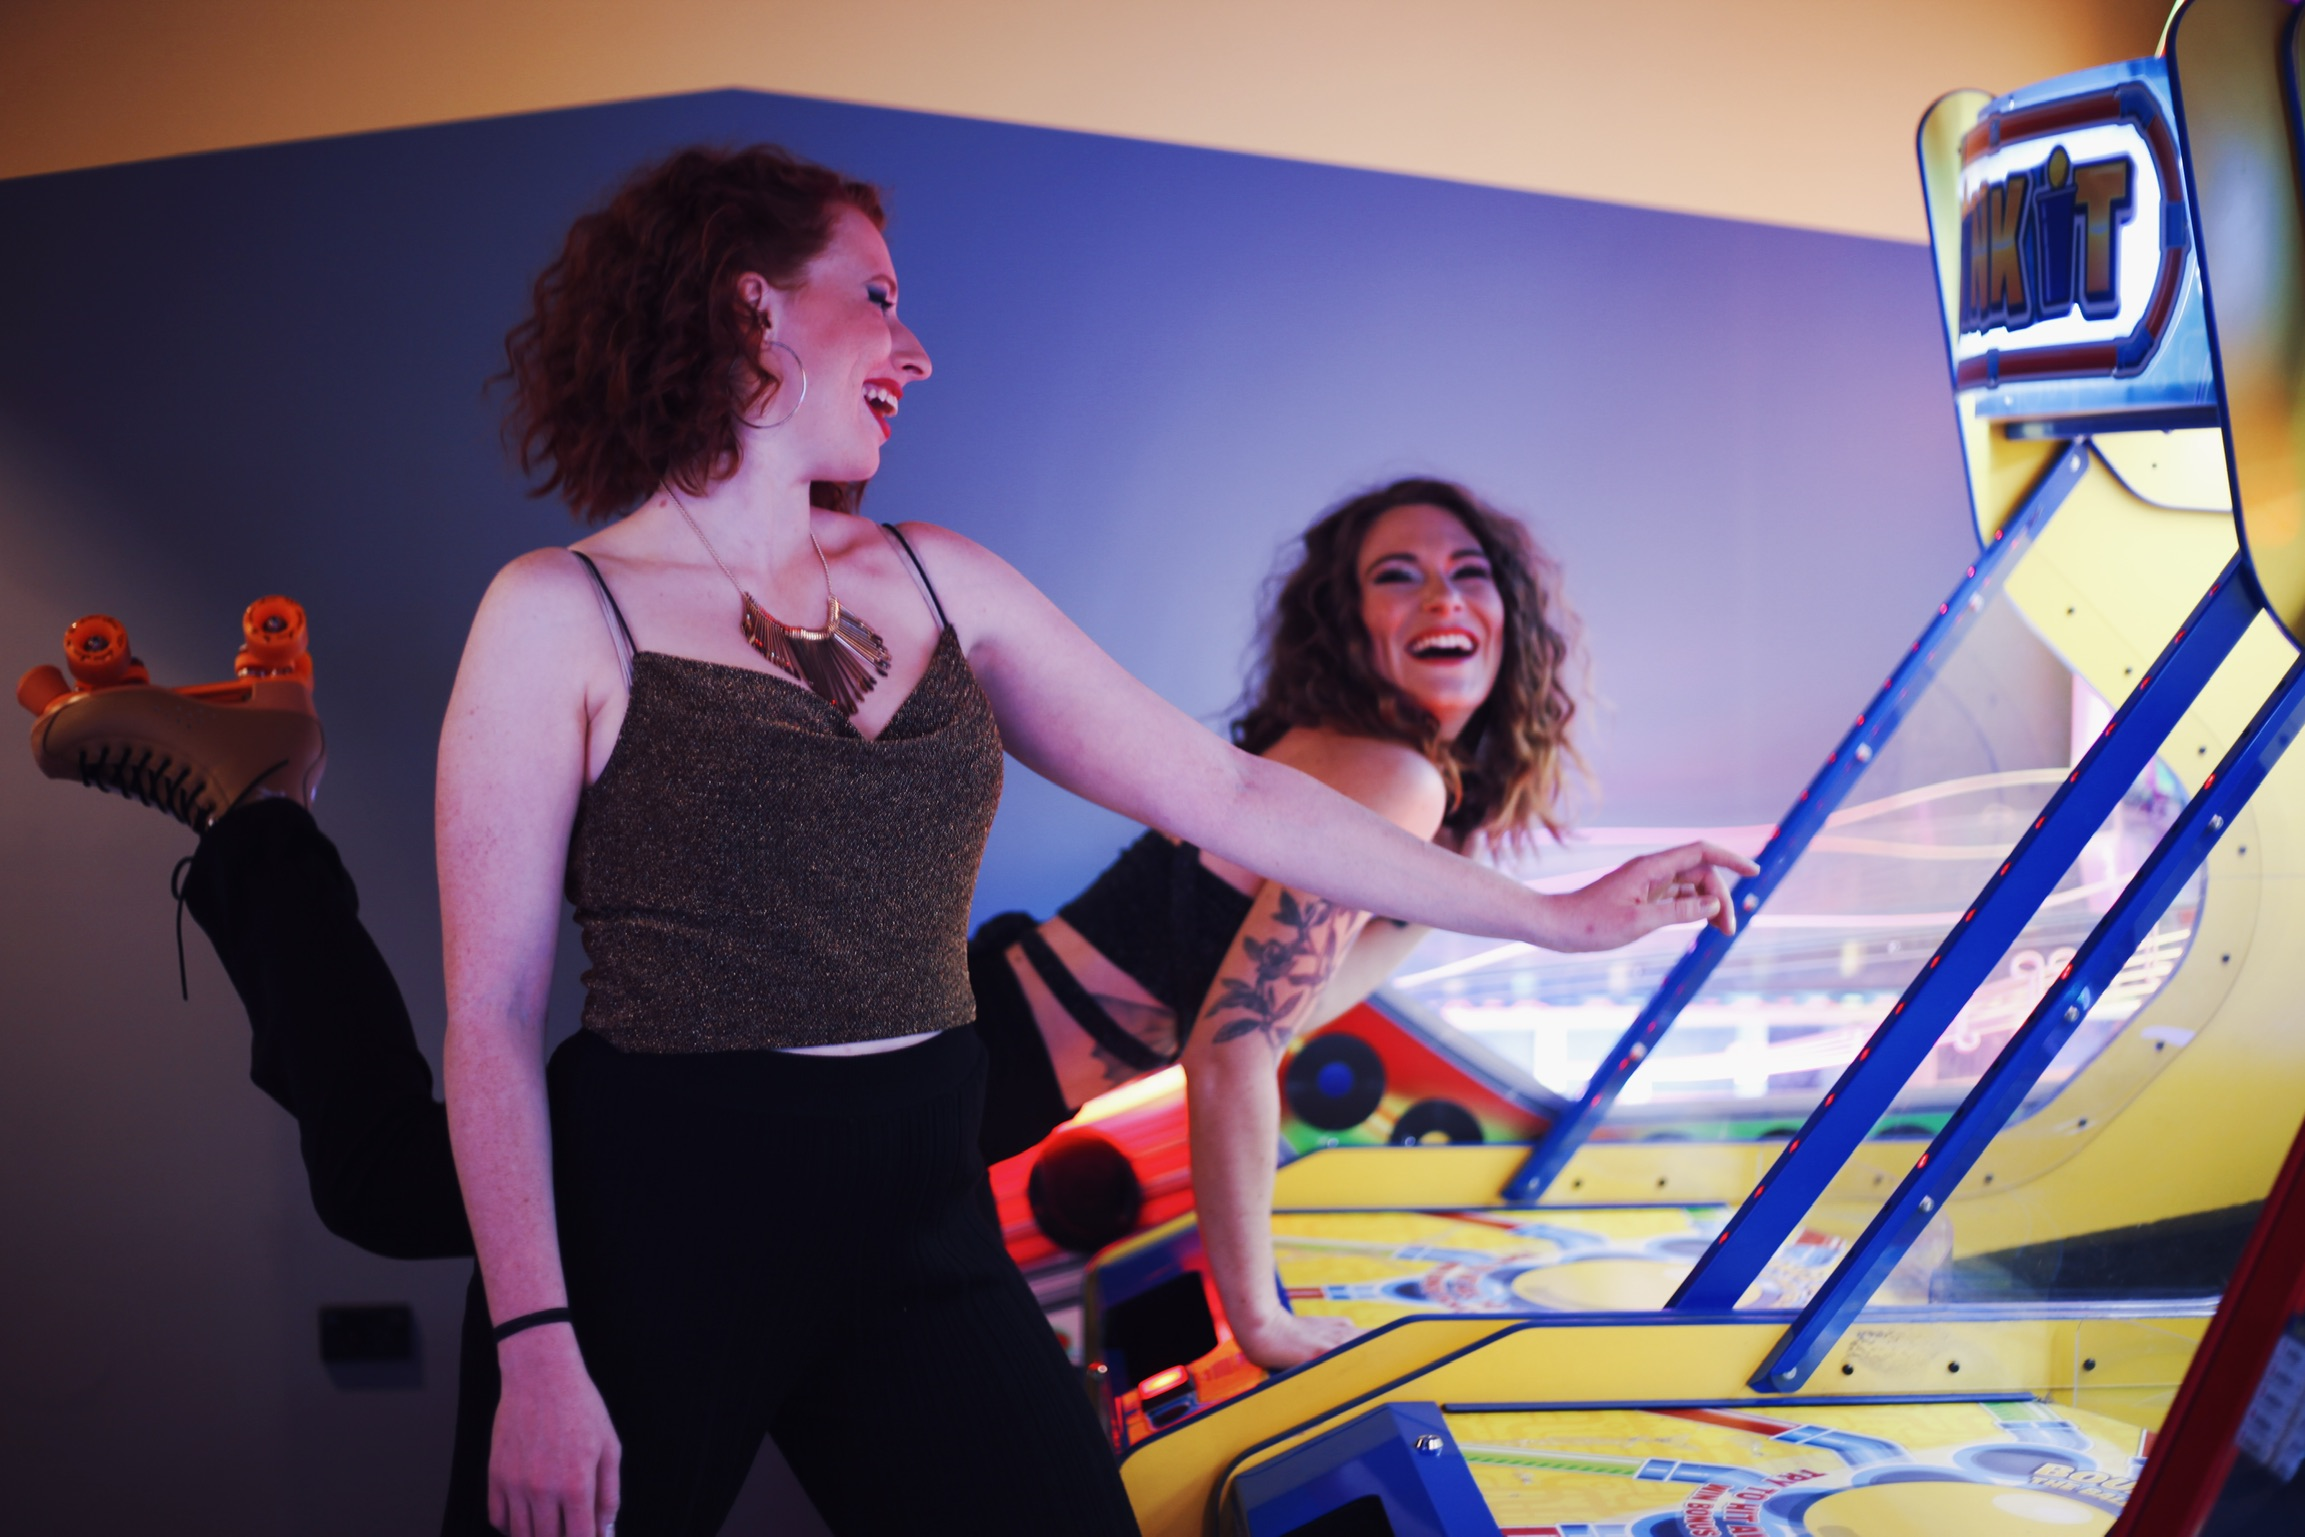 girls laghing and playing arcade games